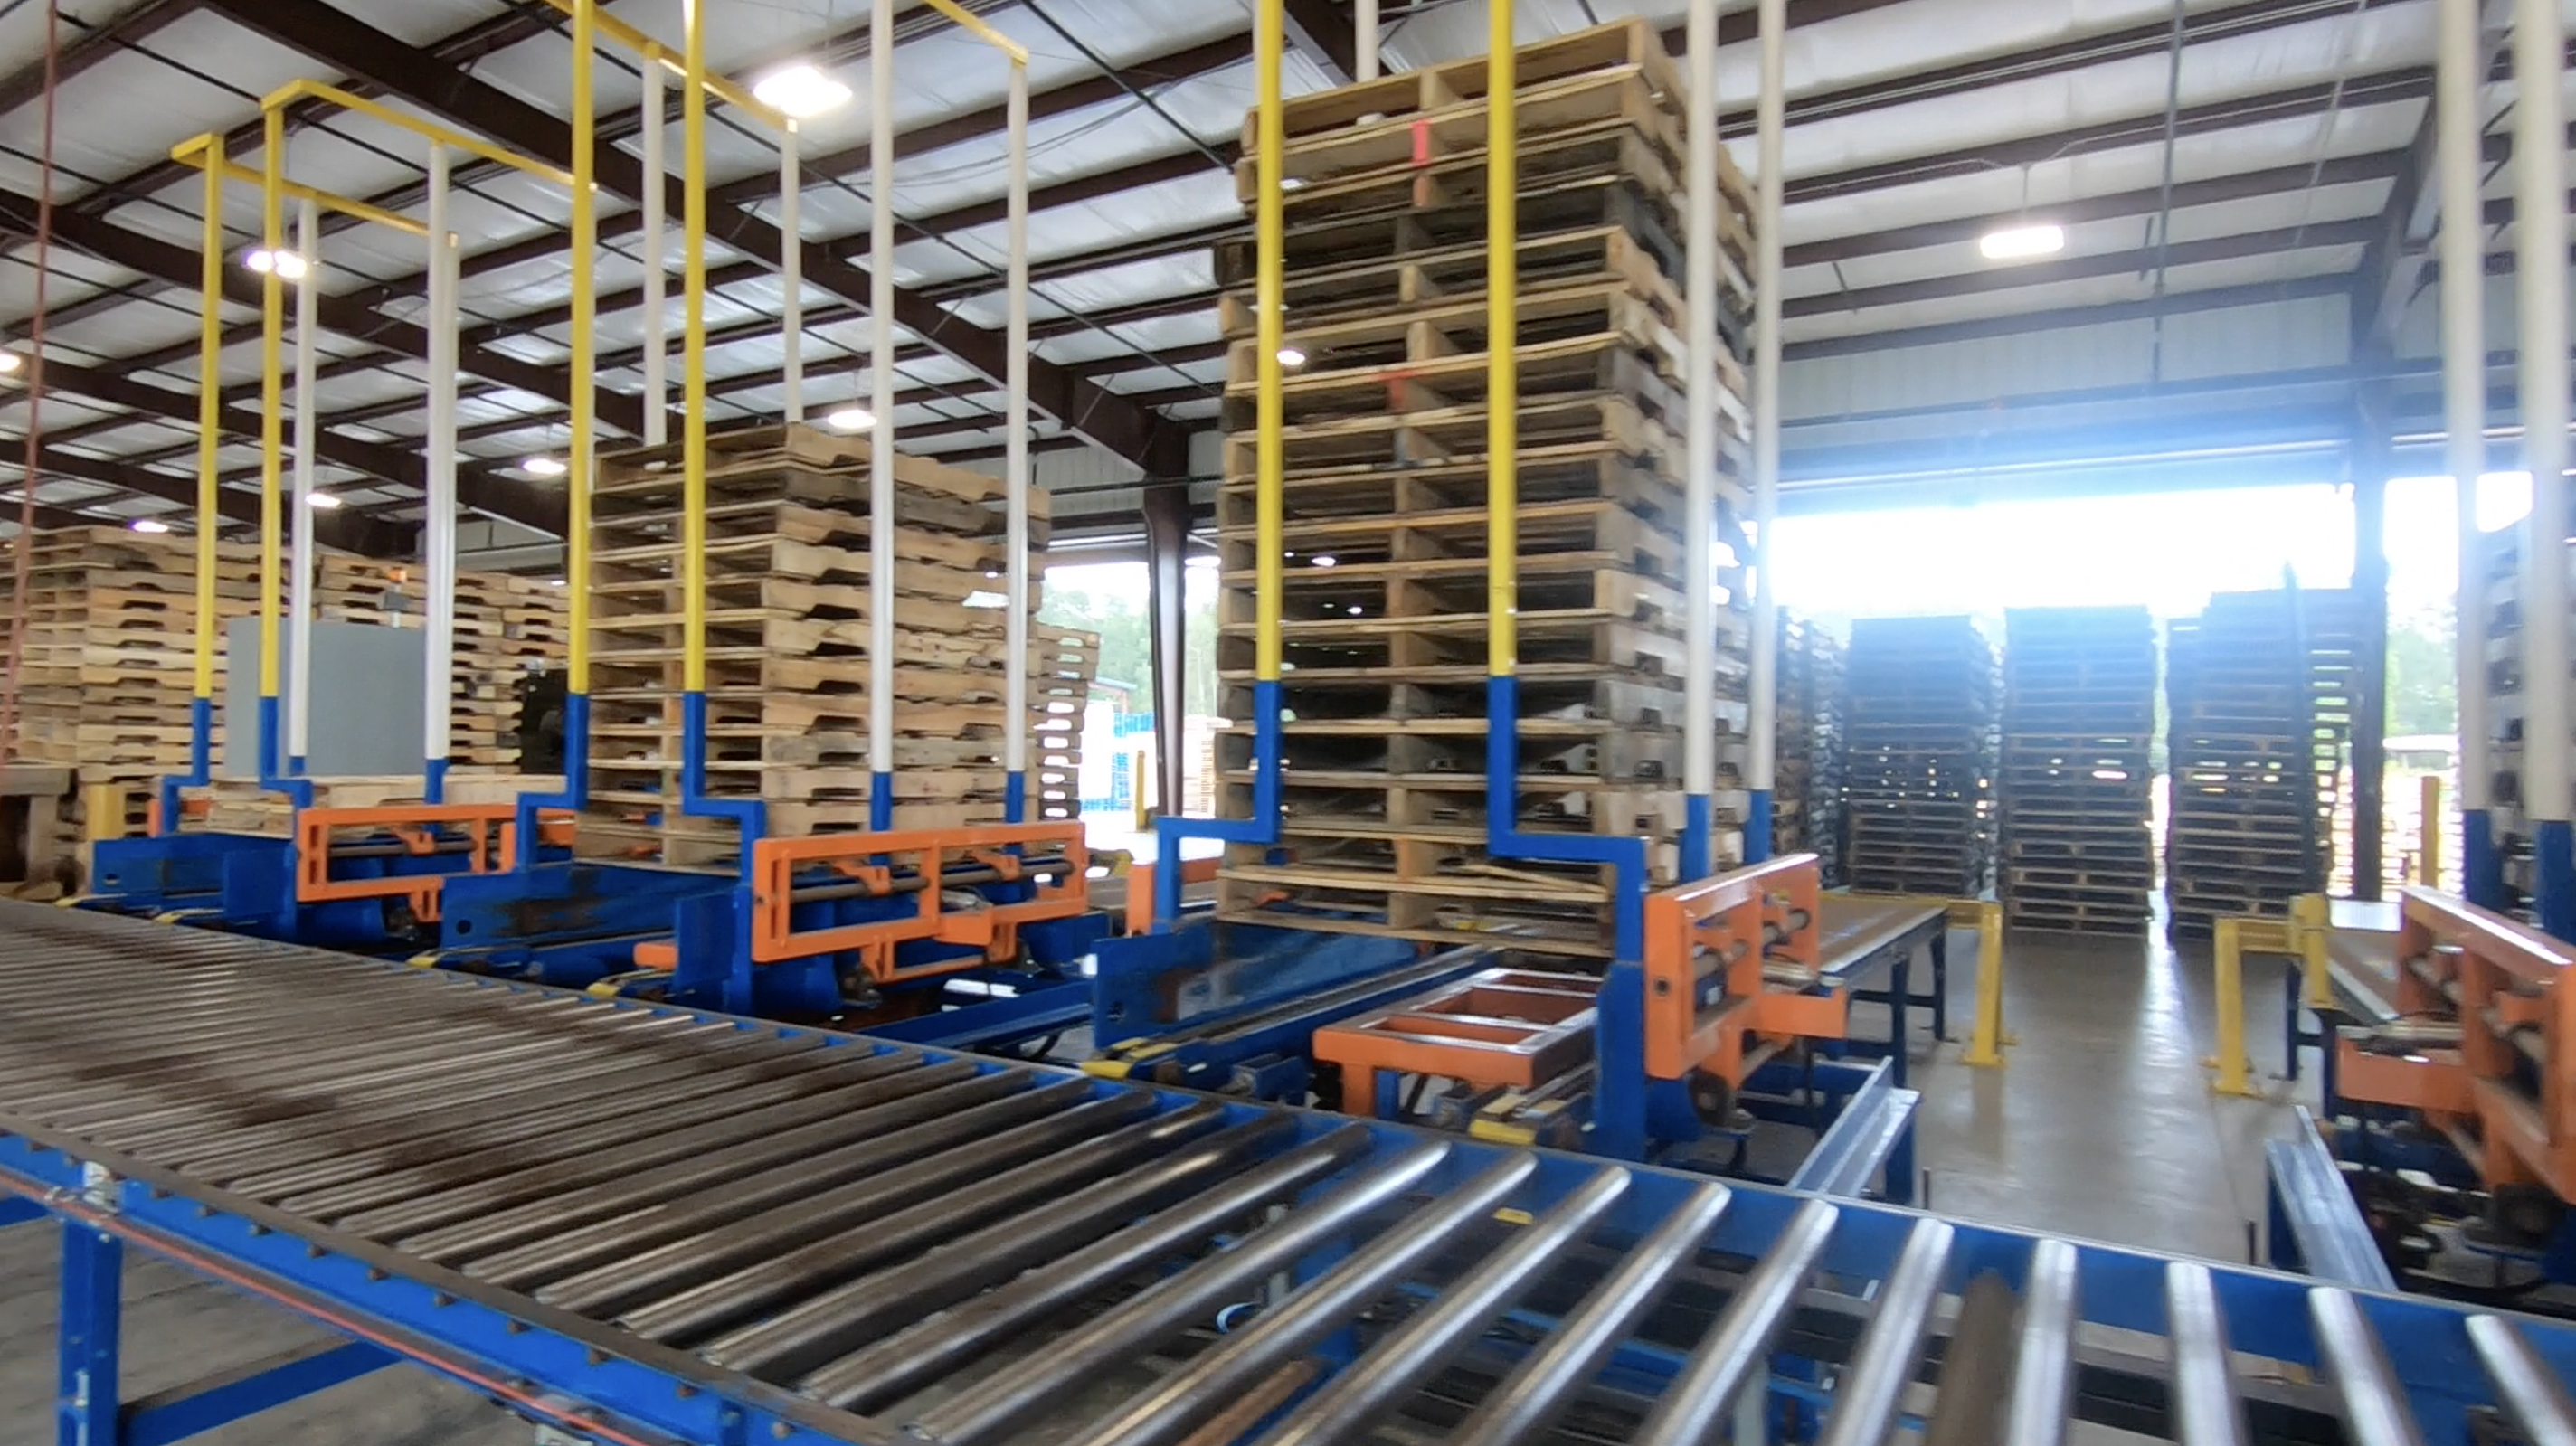 Wooden Pallets For Sale   Pallet Supply   Pallet Consultants